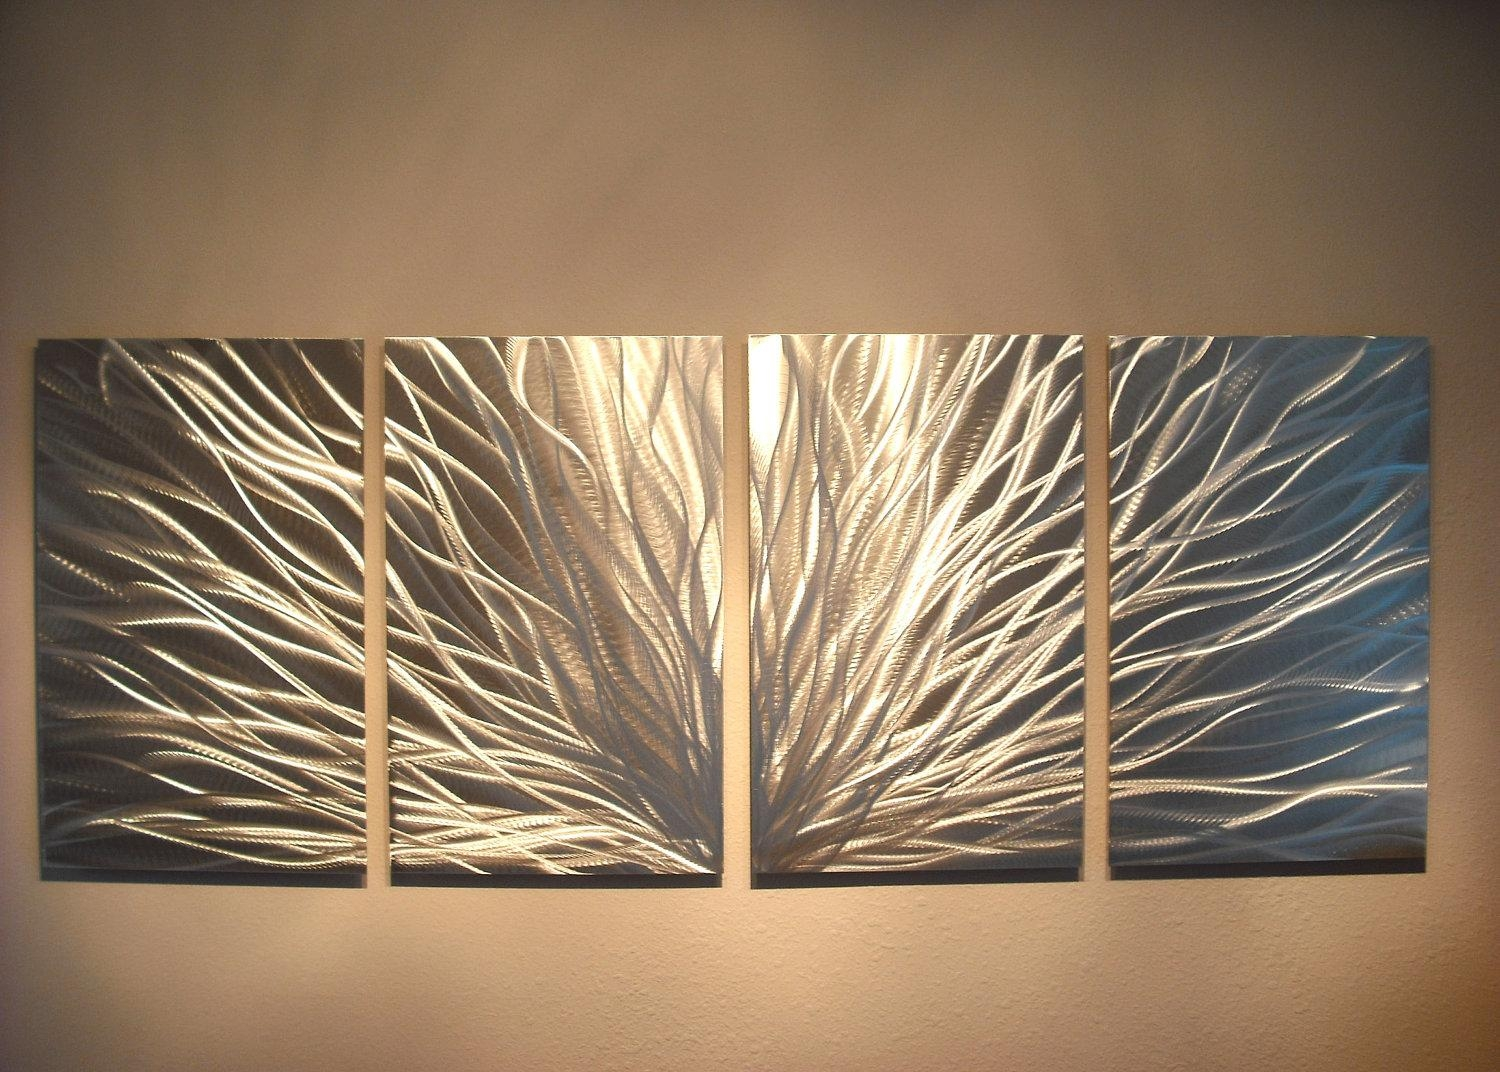 Low Budget Contemporary Wall Decor For Your Living Room | The In Uk Contemporary Wall Art (View 5 of 20)